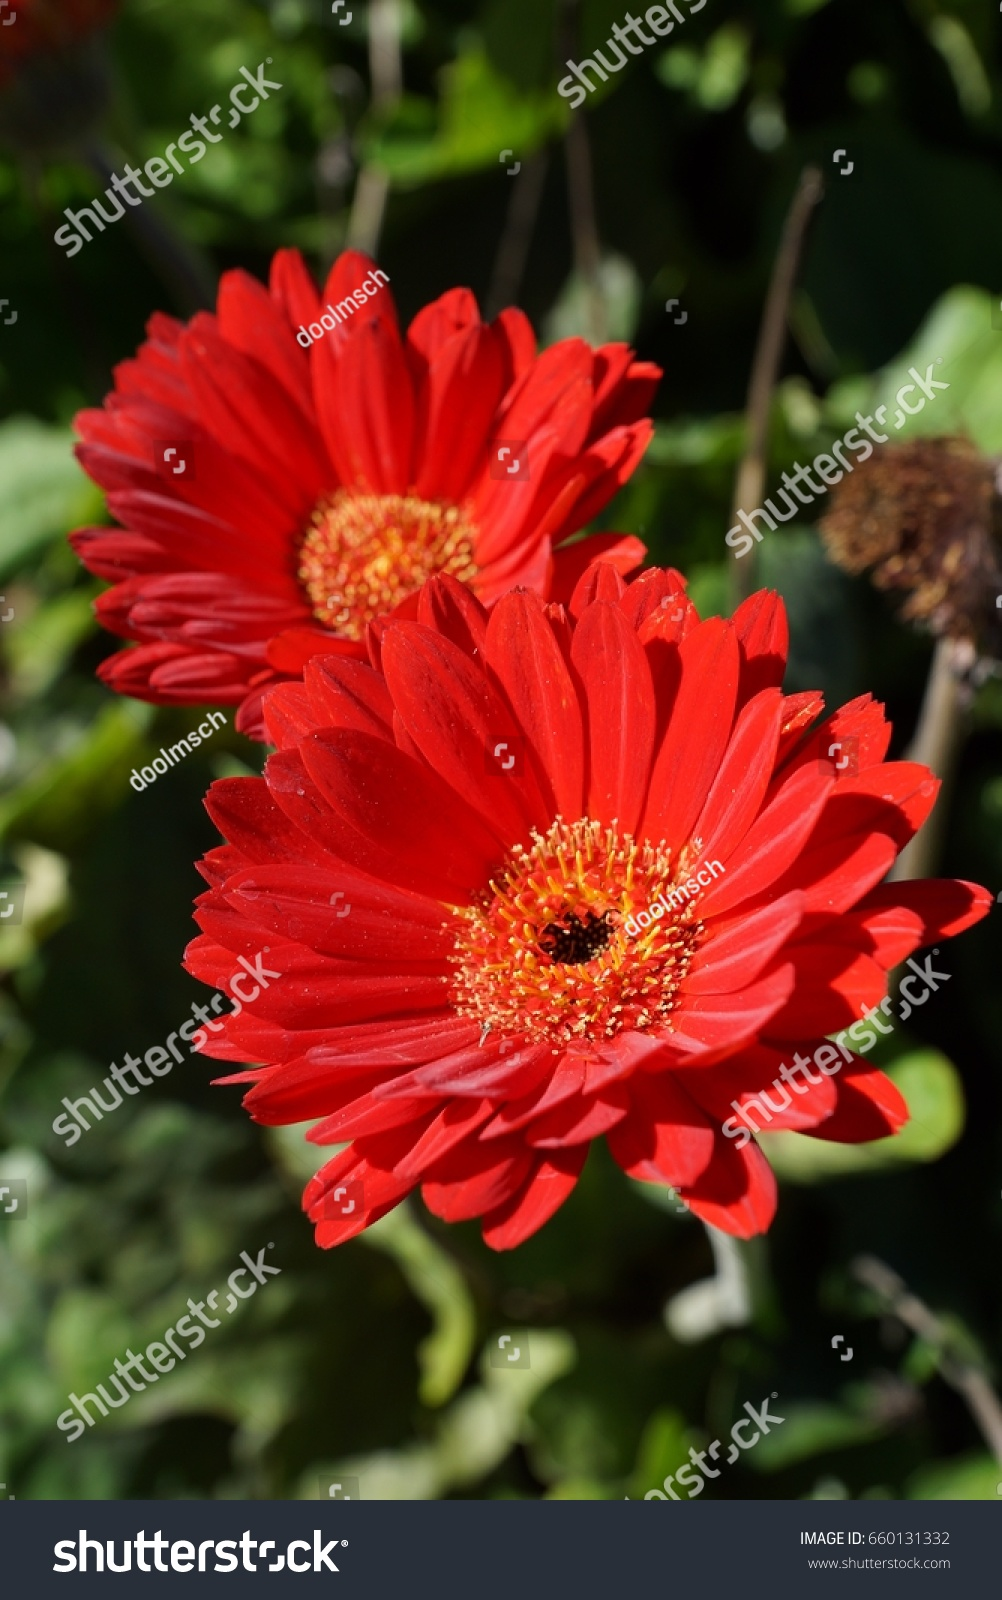 Two bright red daisy flowers closeup stock photo edit now two bright red daisy flowers closeup izmirmasajfo